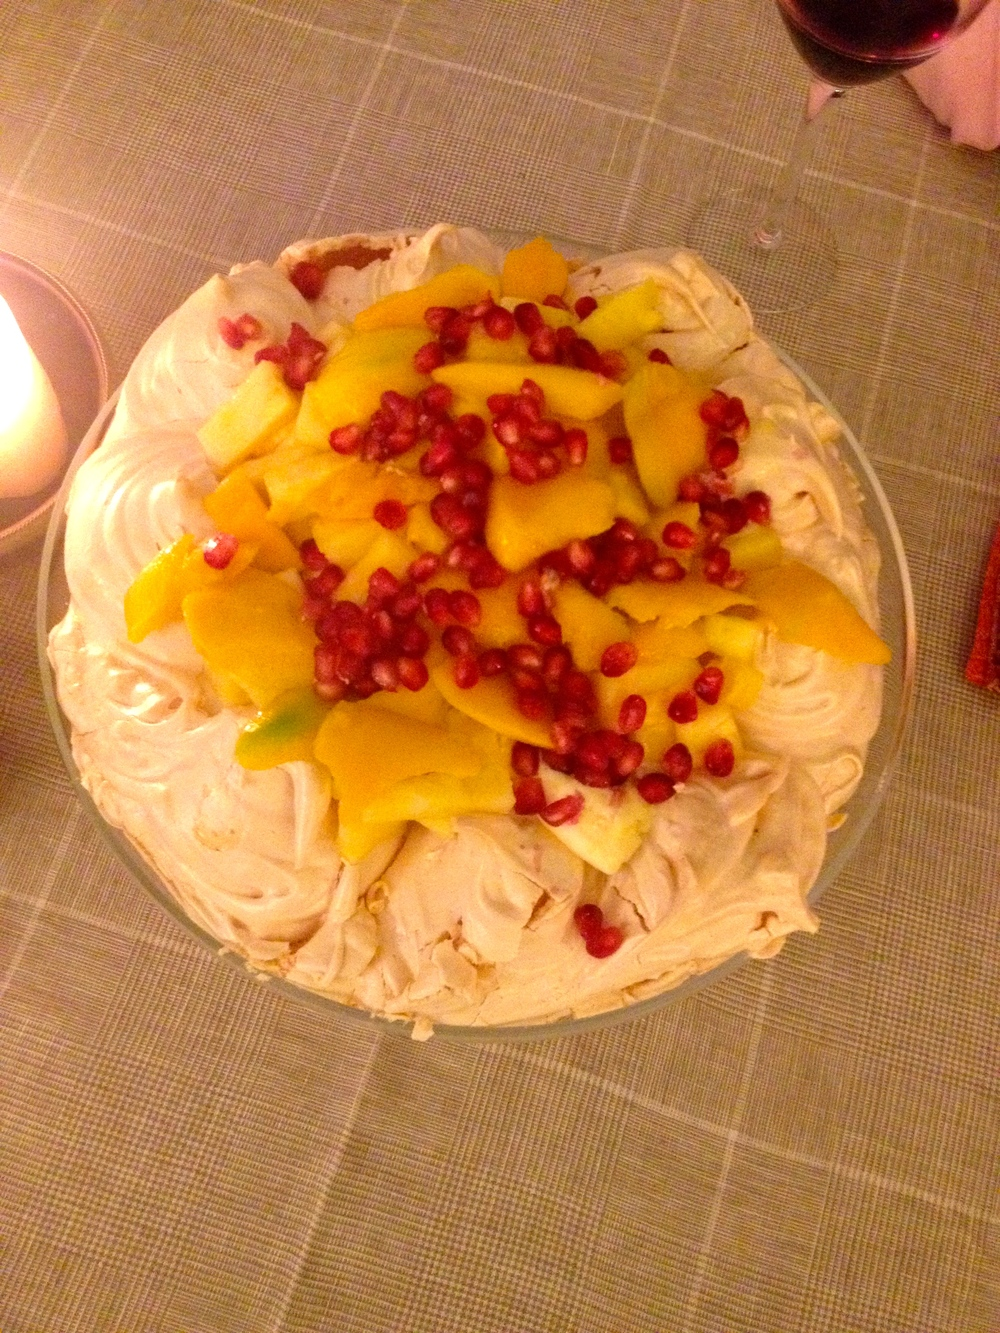 Springtime, mangoes and pomegranate